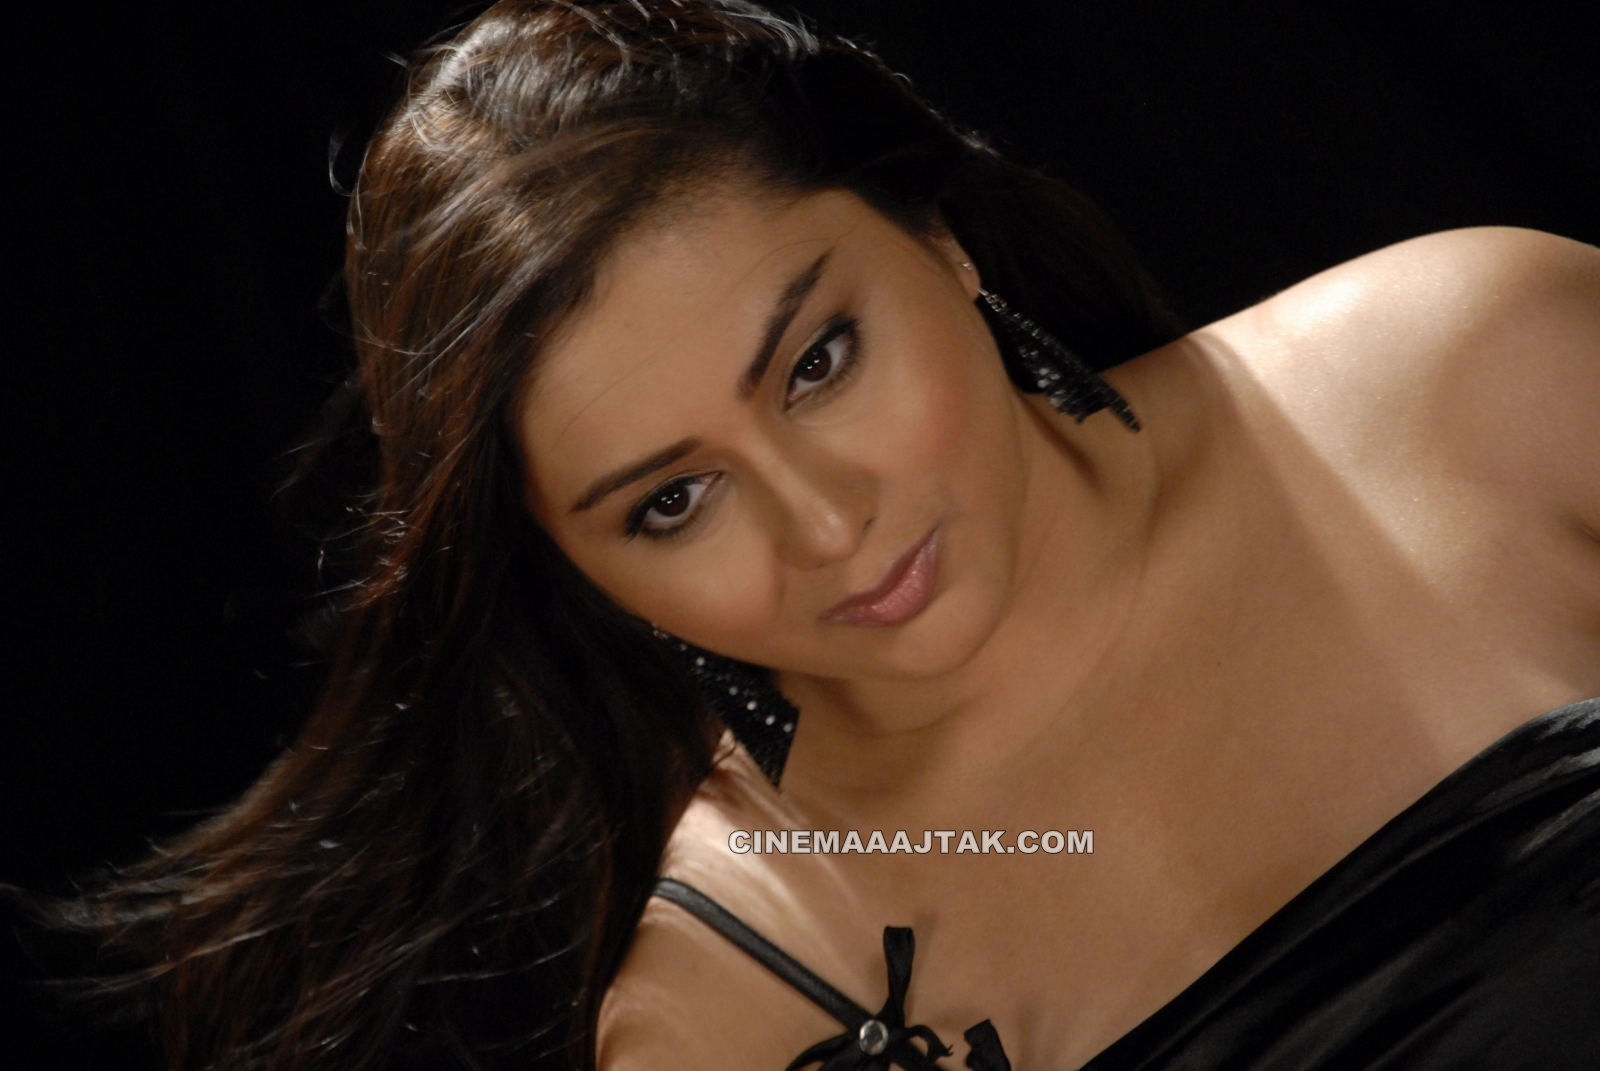 Desibbrg hot - Namita Looking Hot In Love College Movie Images ...